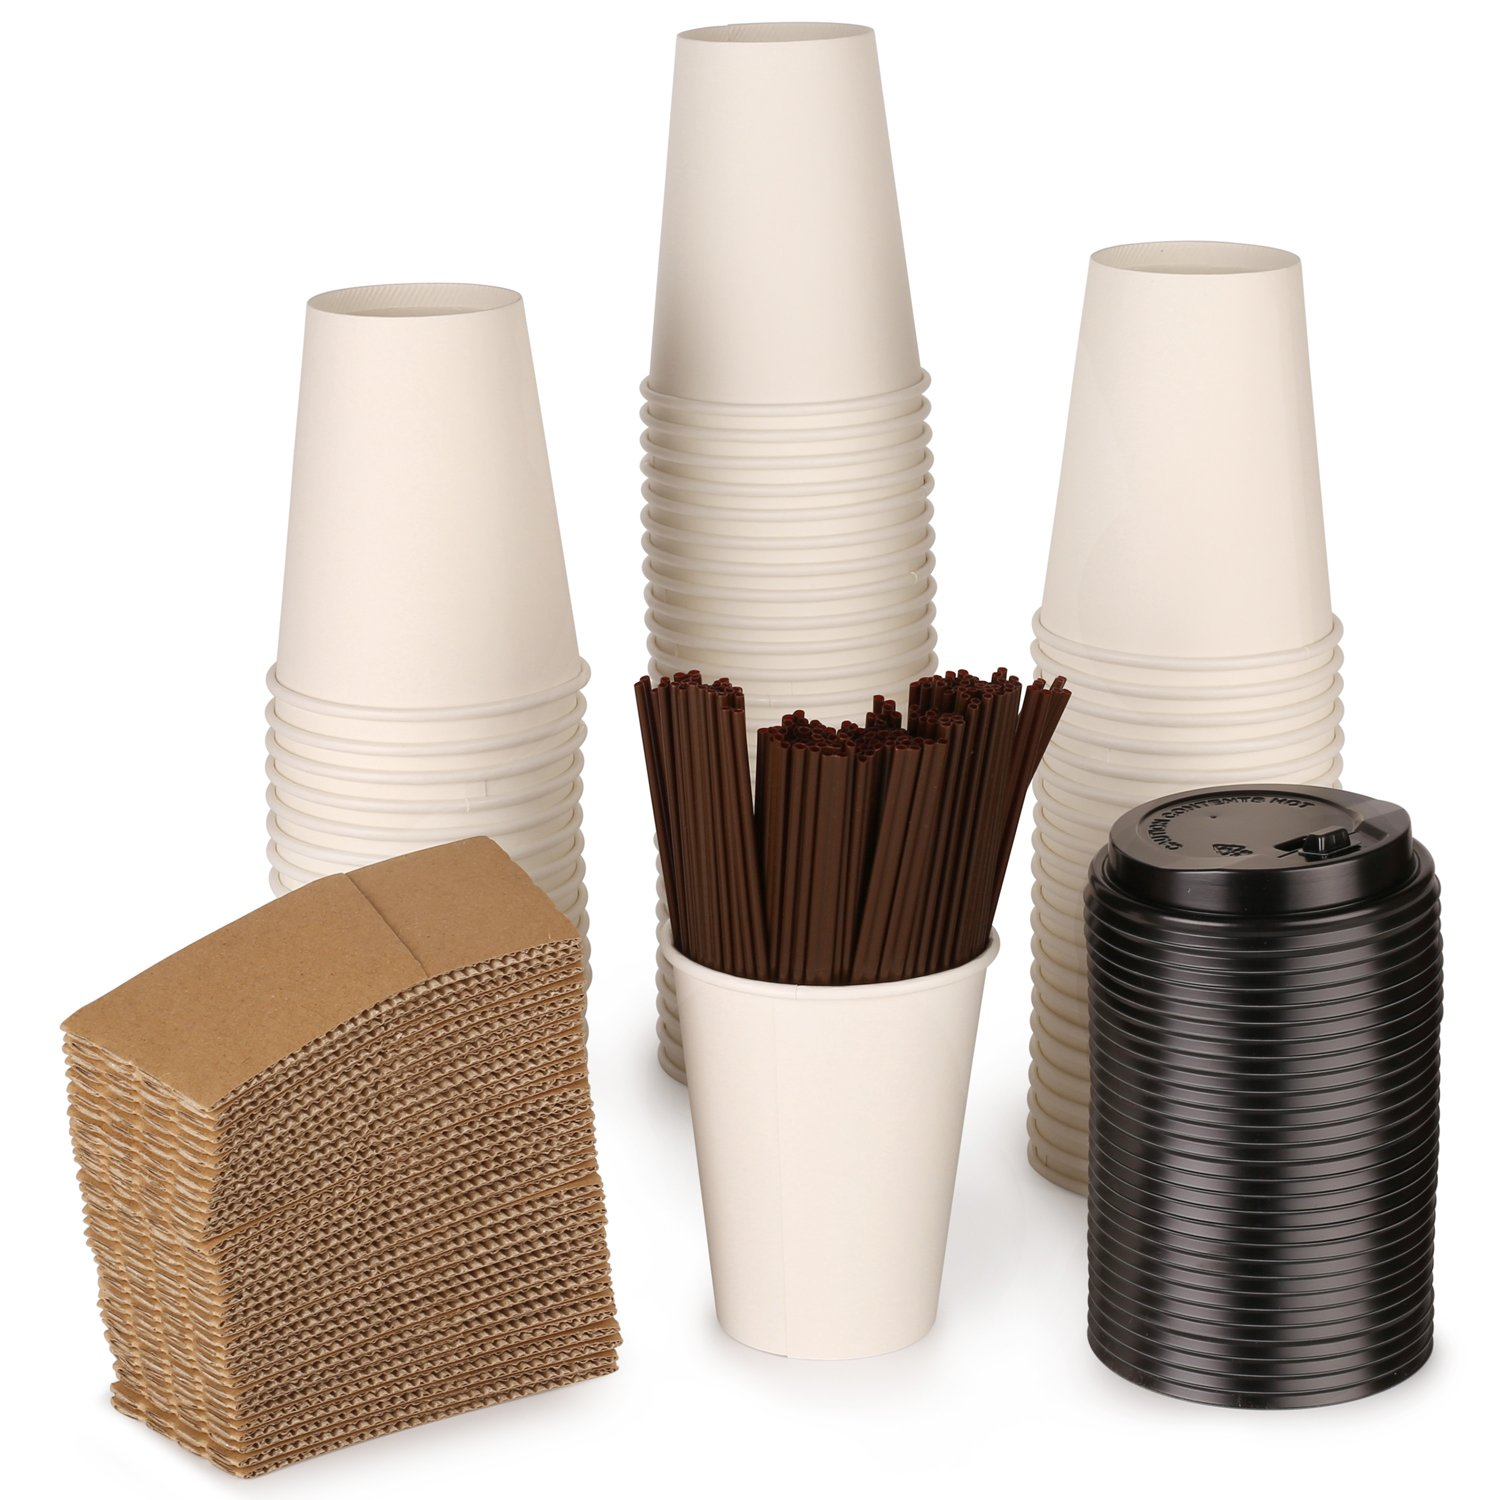 - Paper coffee Hot cups by ZTLbrand - with lids, straws and sleeves [White] 12 oz- Set of 100. Perfect for party or daily routine- Reusable and Disposable coffee cups